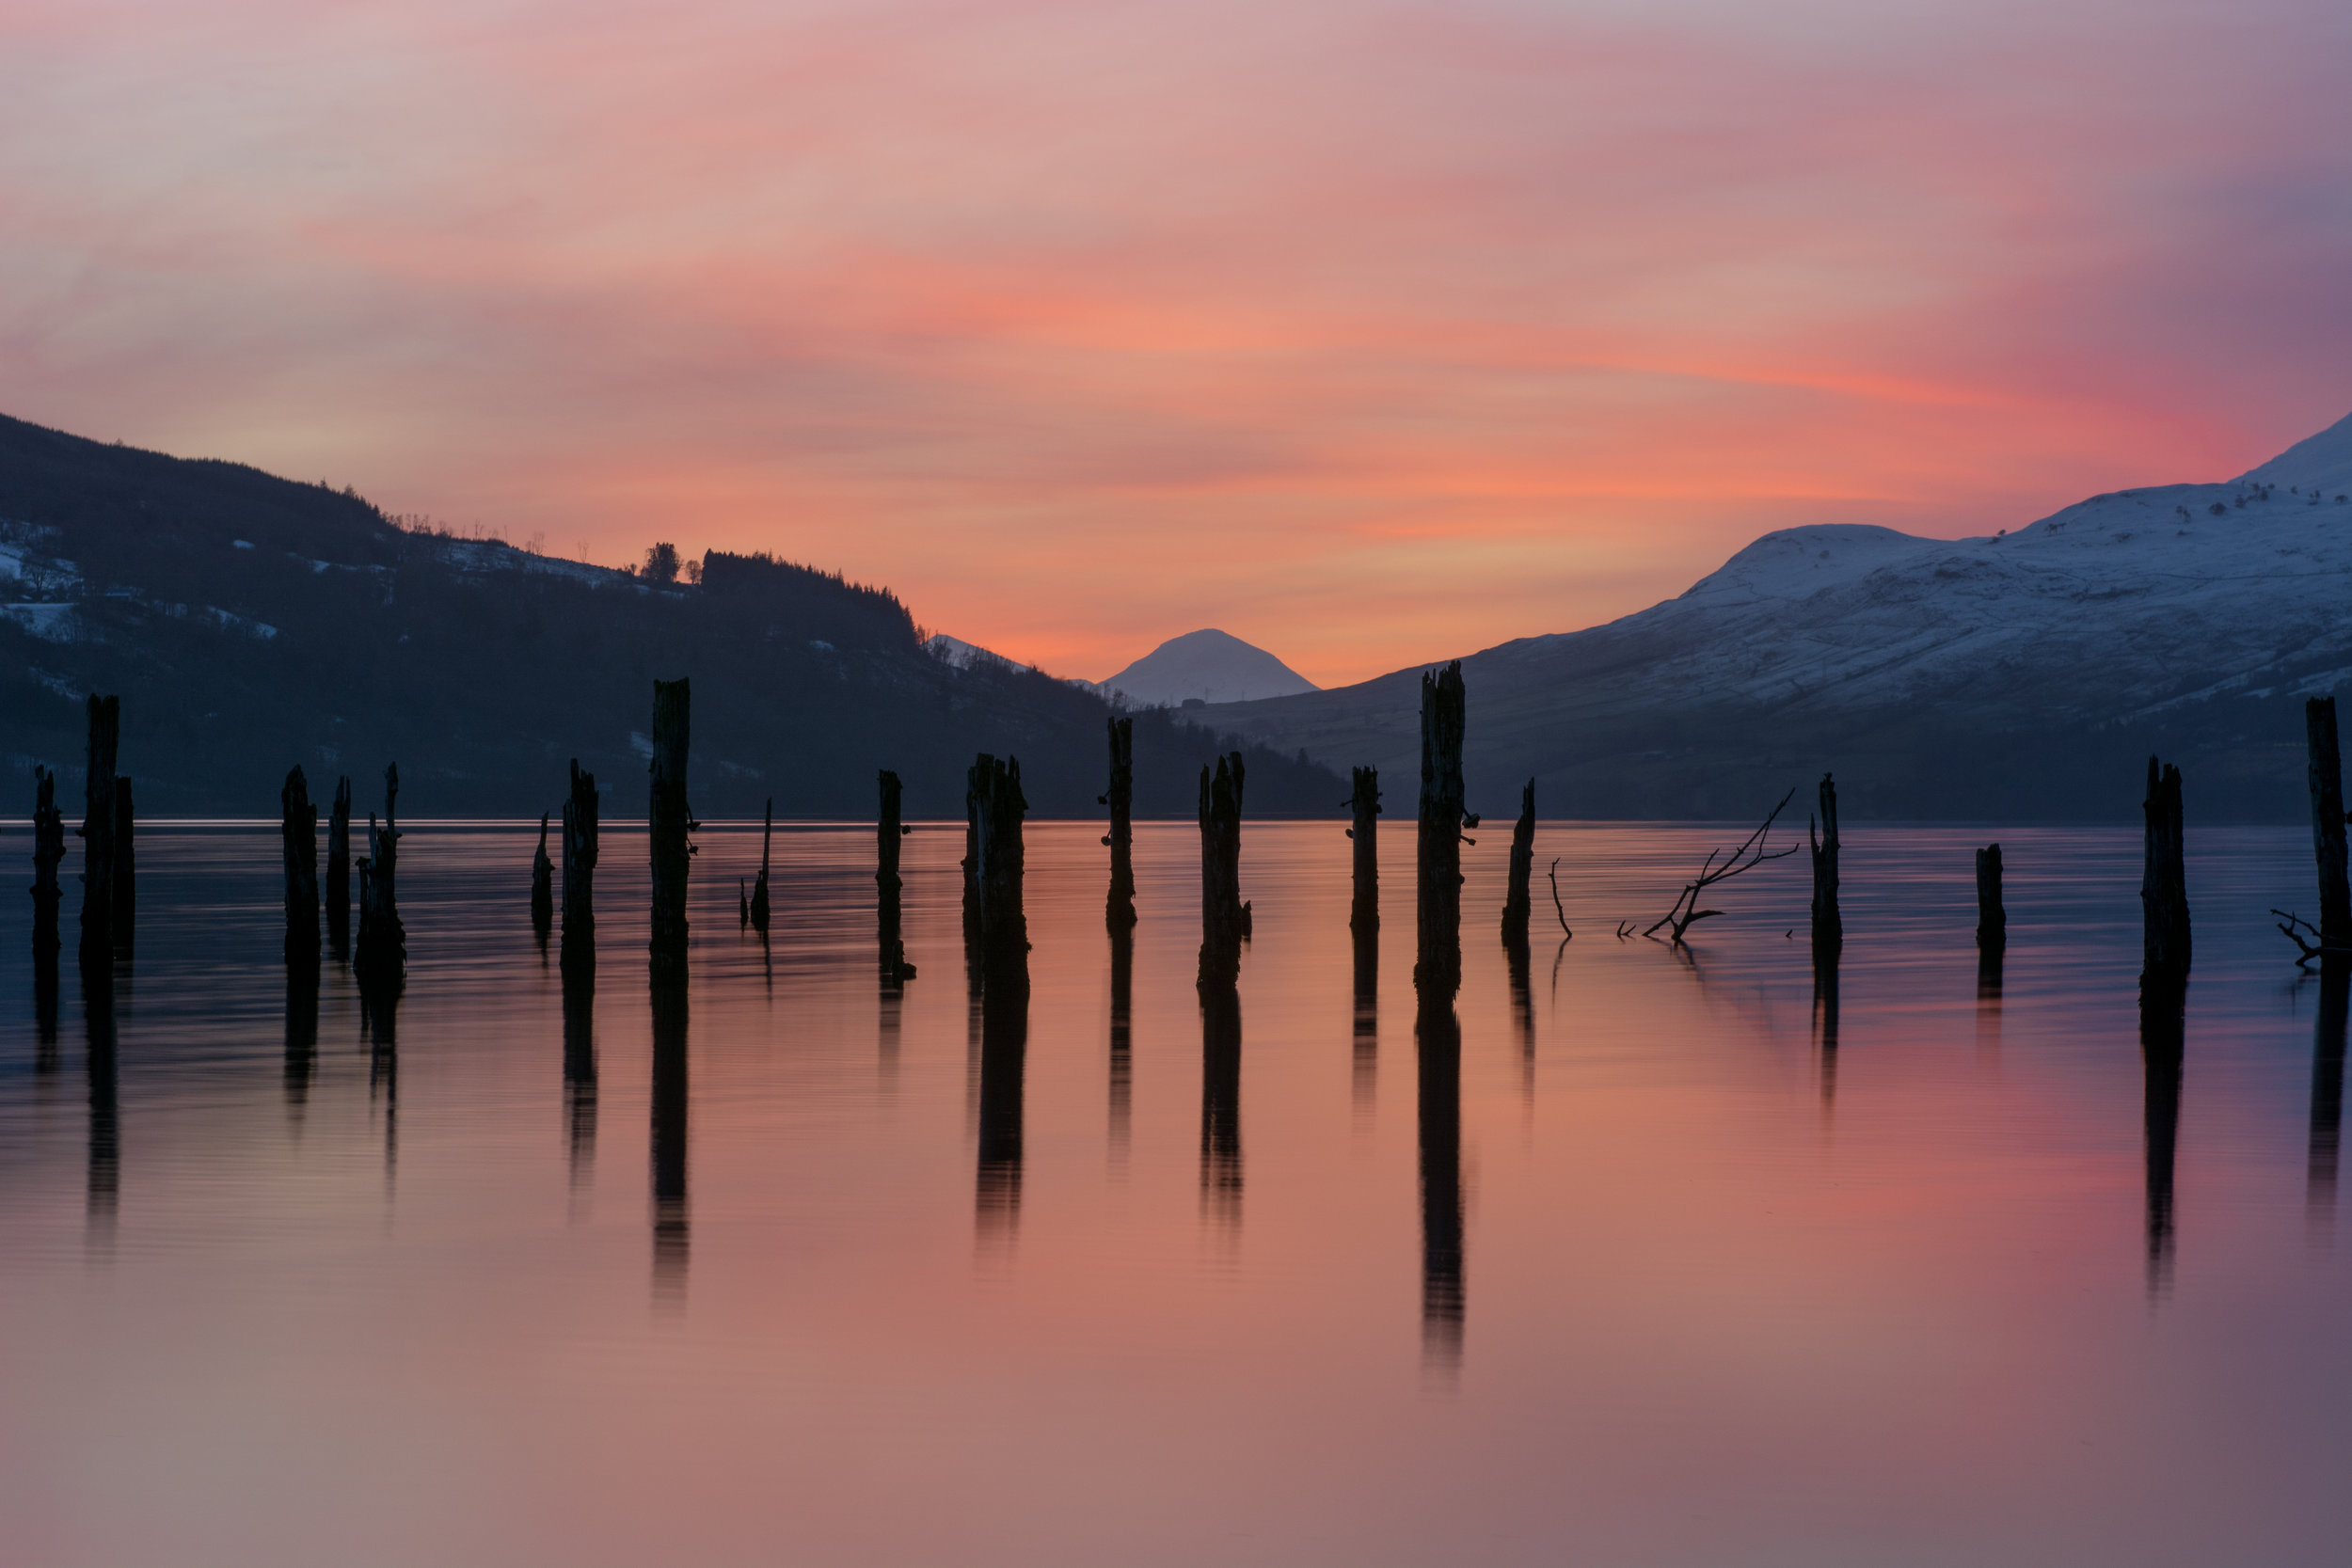 Sunset on Loch Tay by Katherine Fotheringham